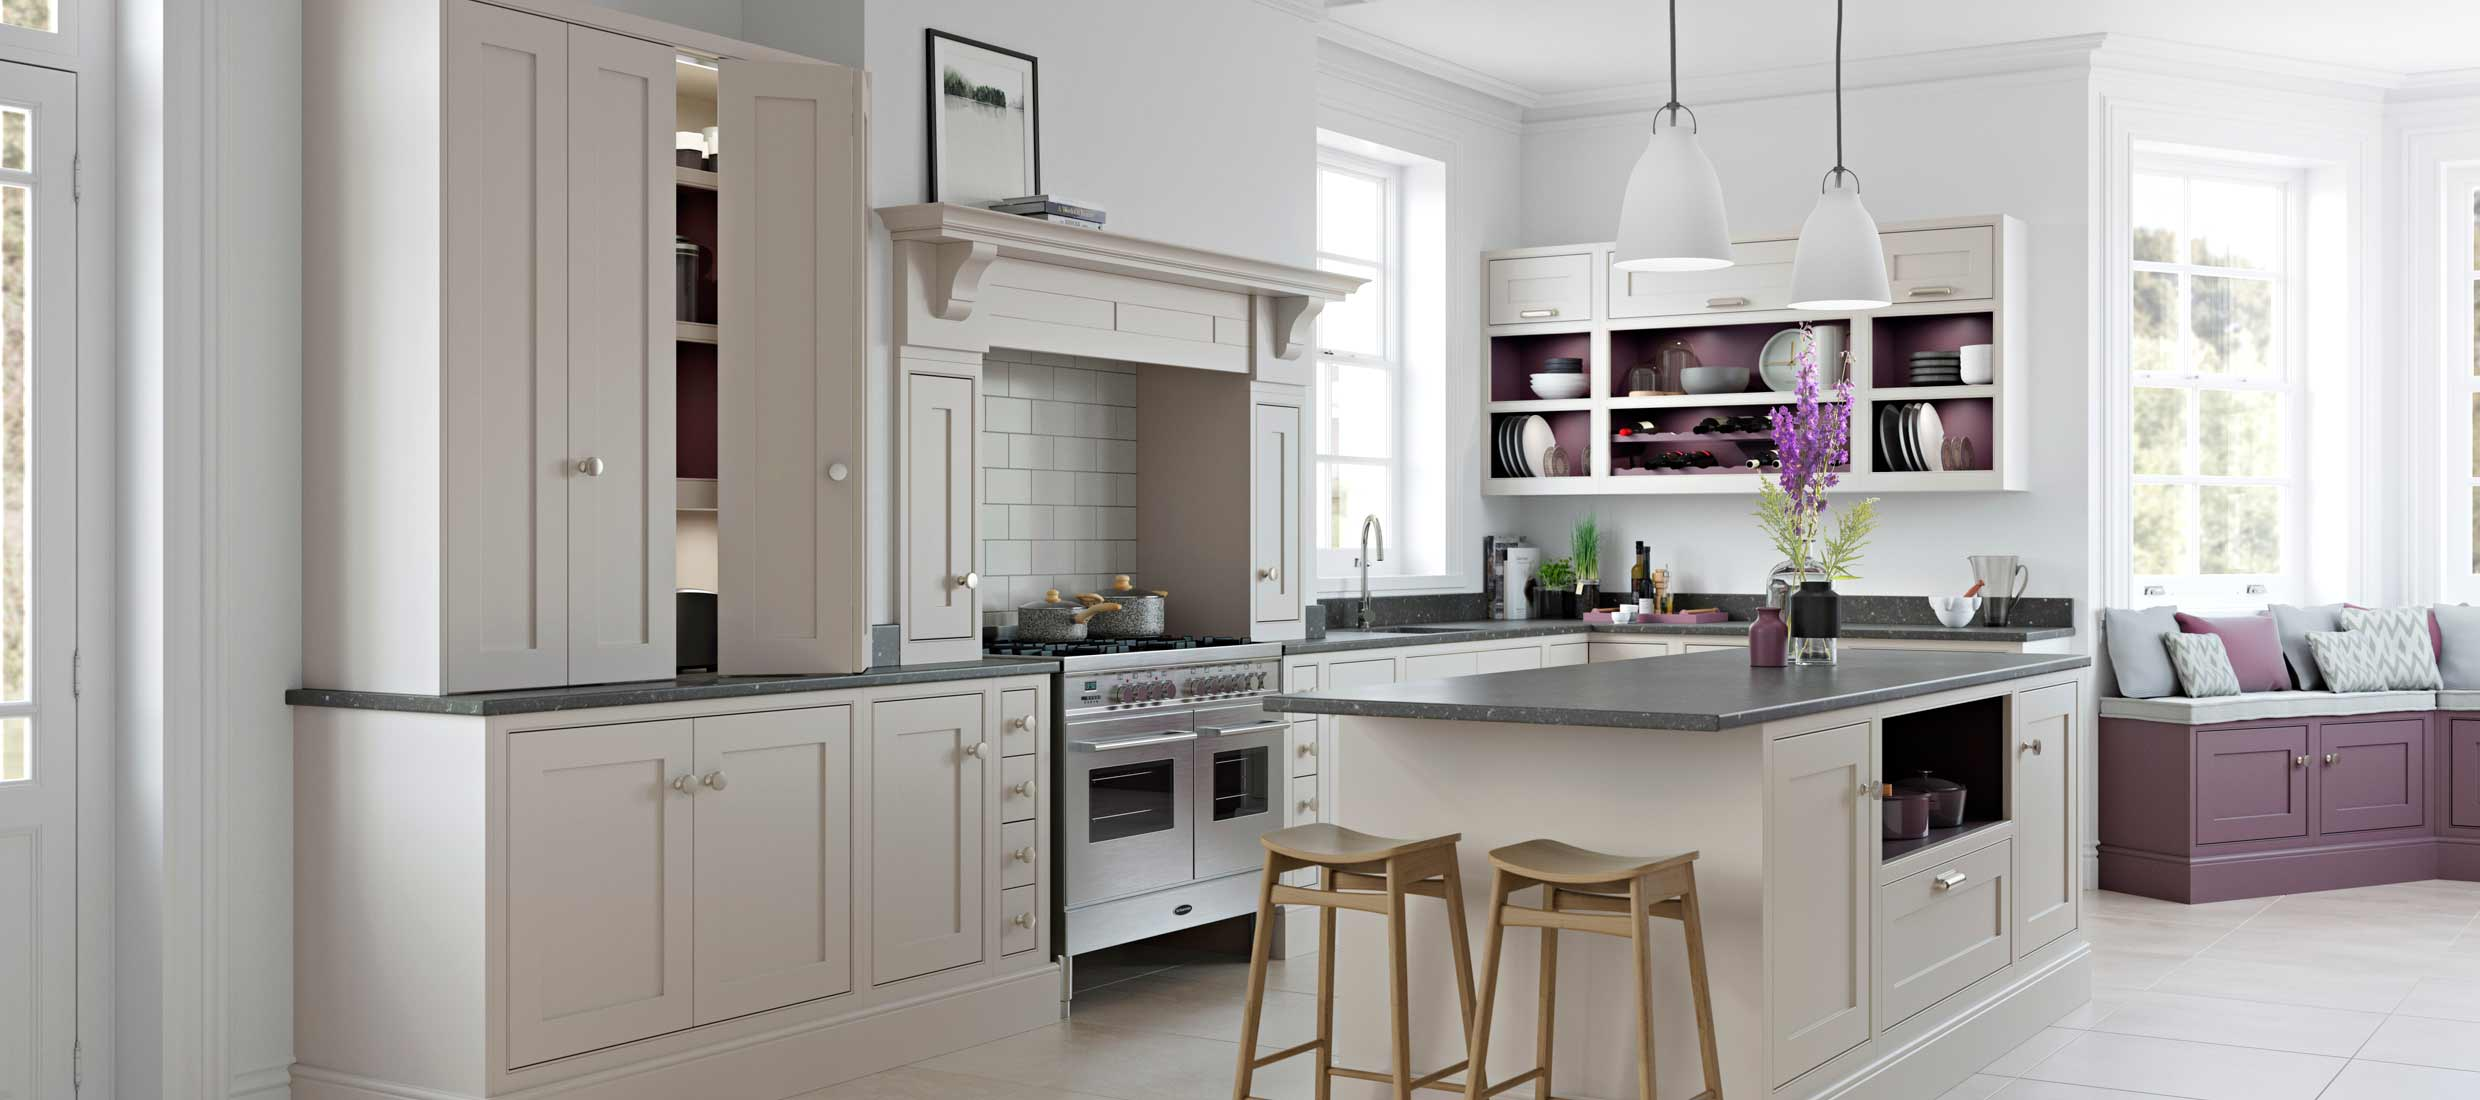 Avon kitchens and bathrooms